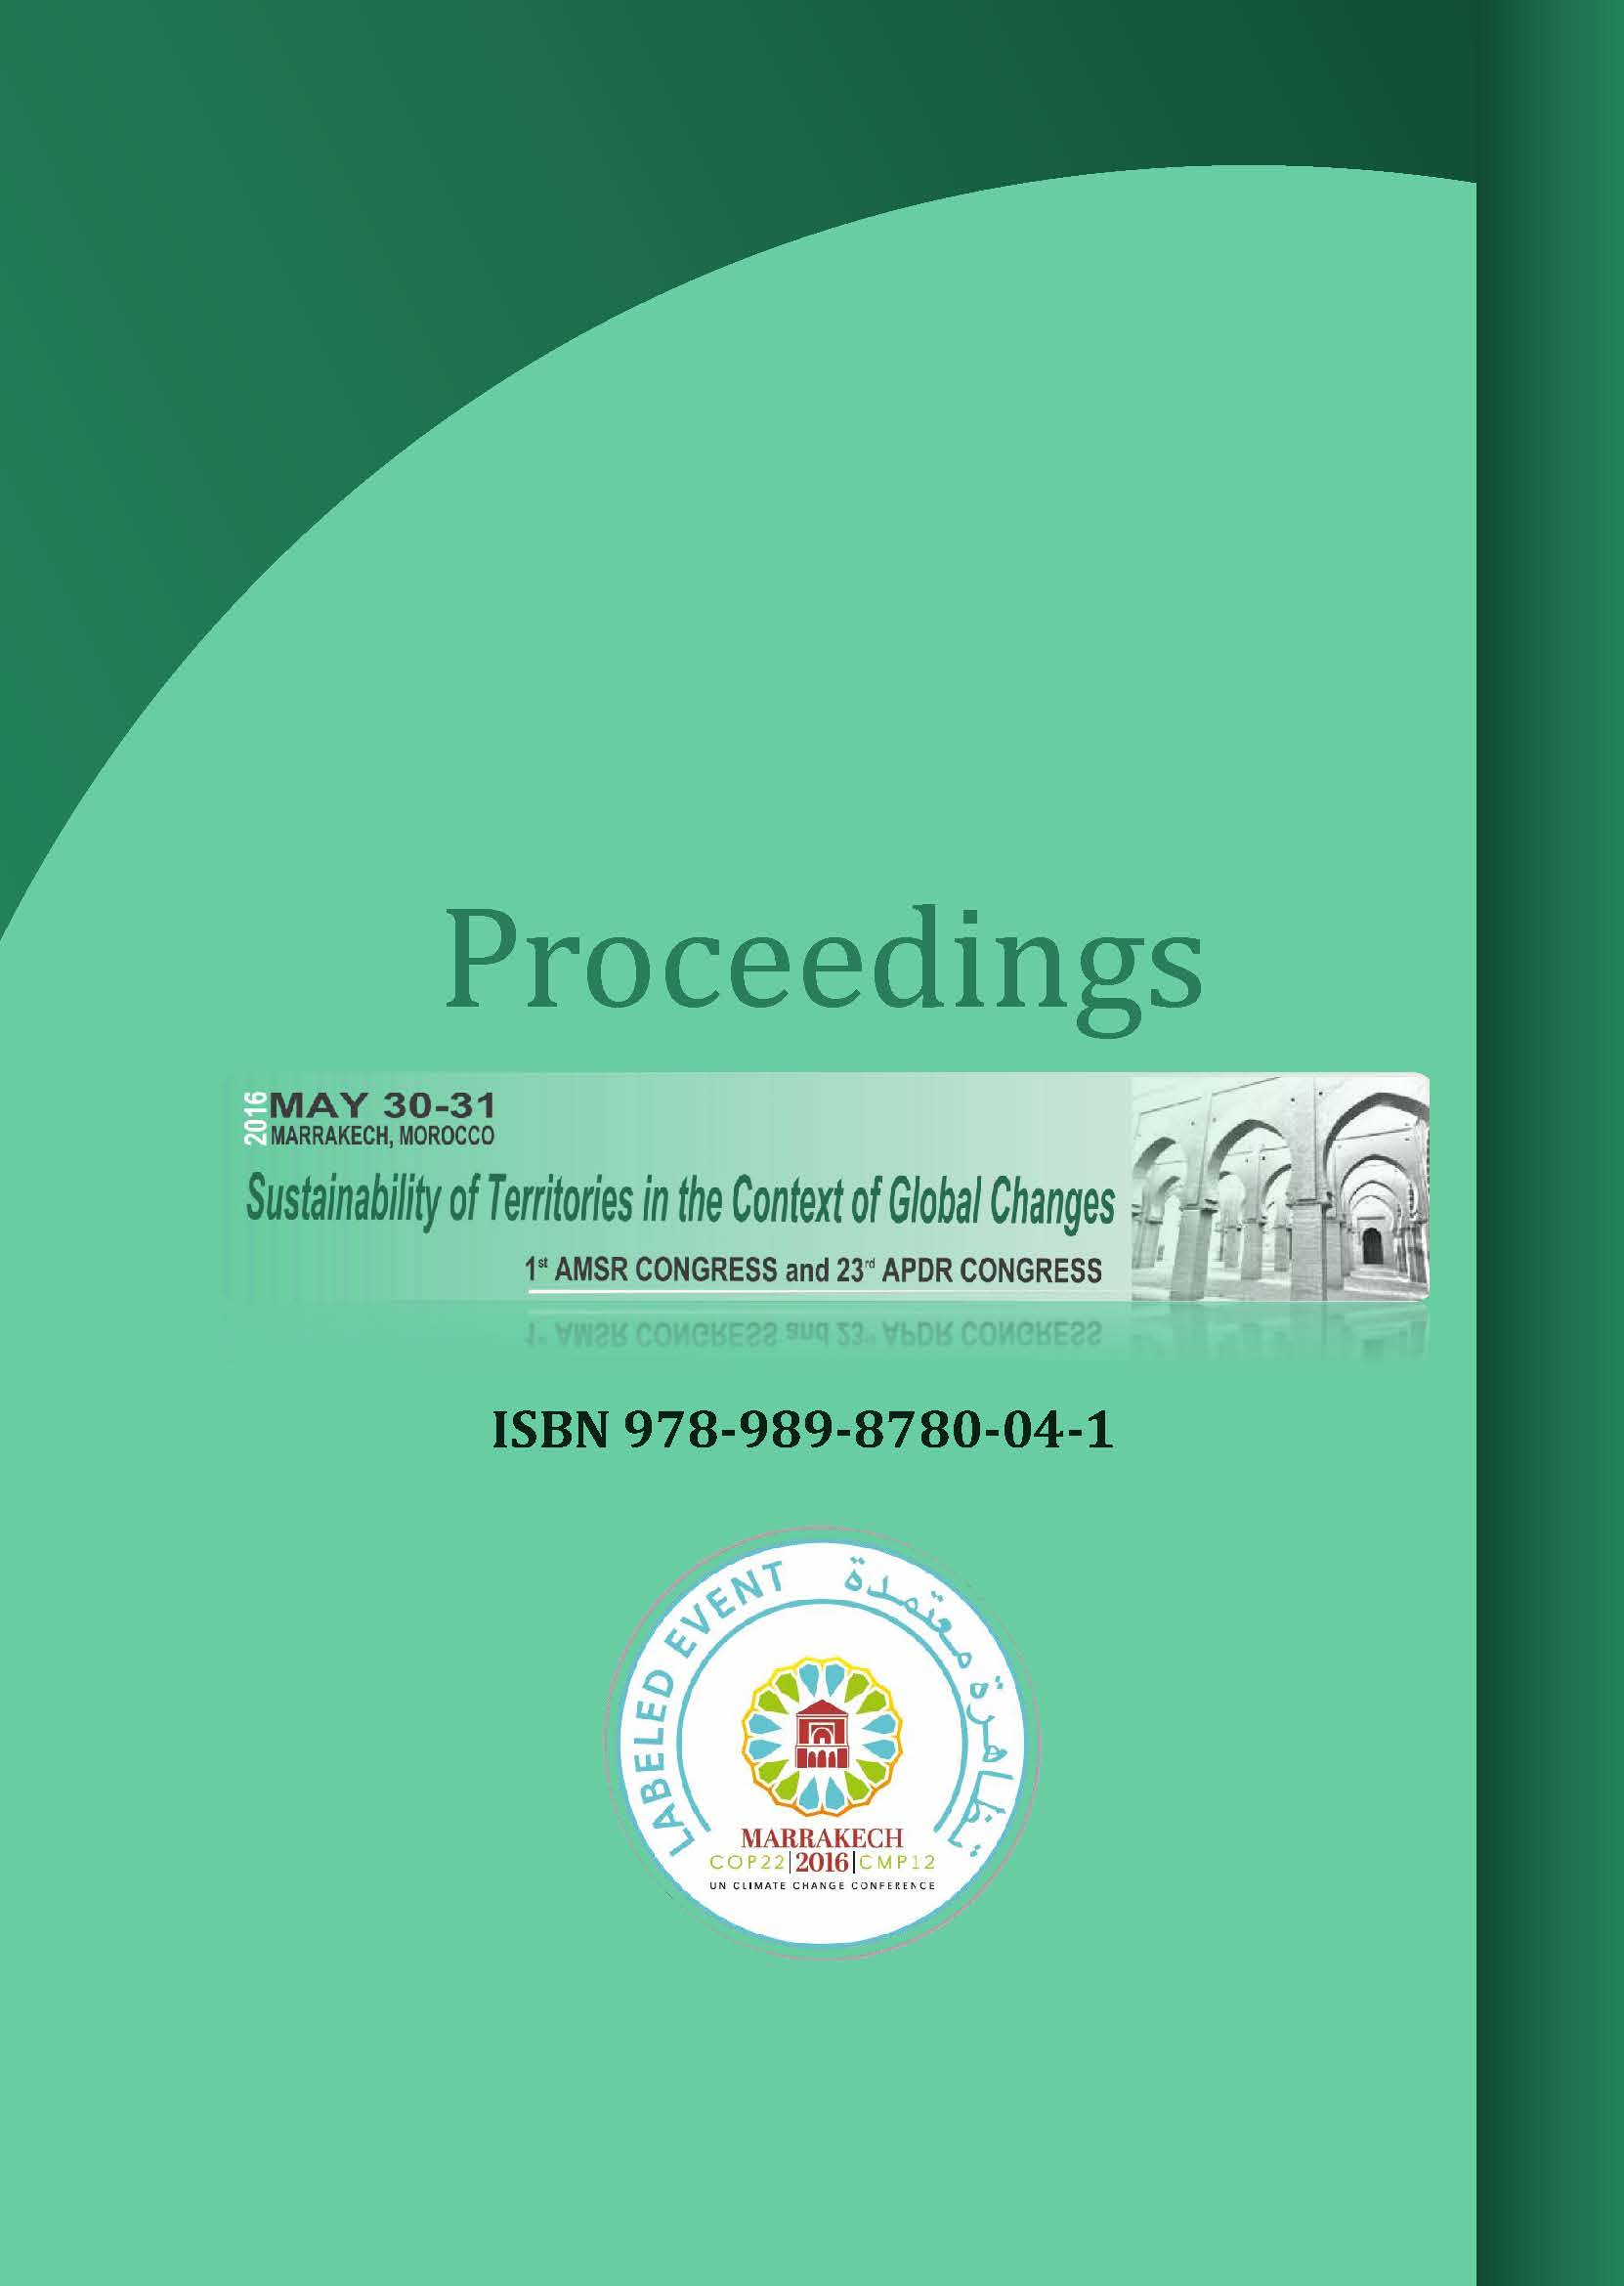 Proceedings | 1st AMSR Congress and 23rd APDR Congress, 30-31 May 2016, Marrakech